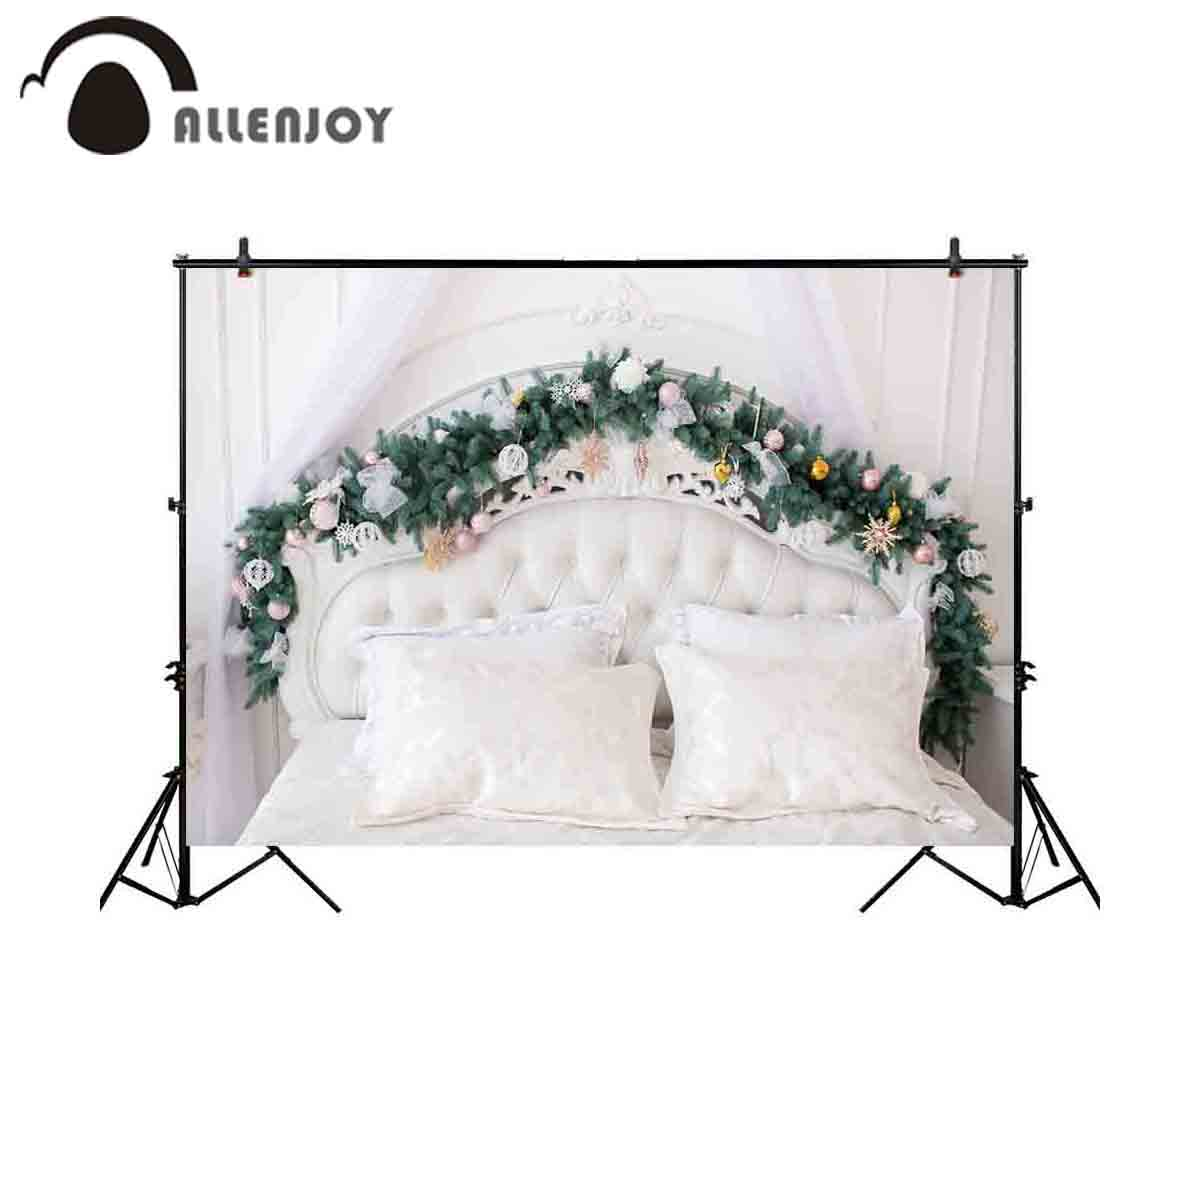 Allenjoy photography background Christmas headboard tufted pine tree leaf backdrop photocall photo studio photobooth fabric christmas pine baubles print fabric waterproof shower curtain